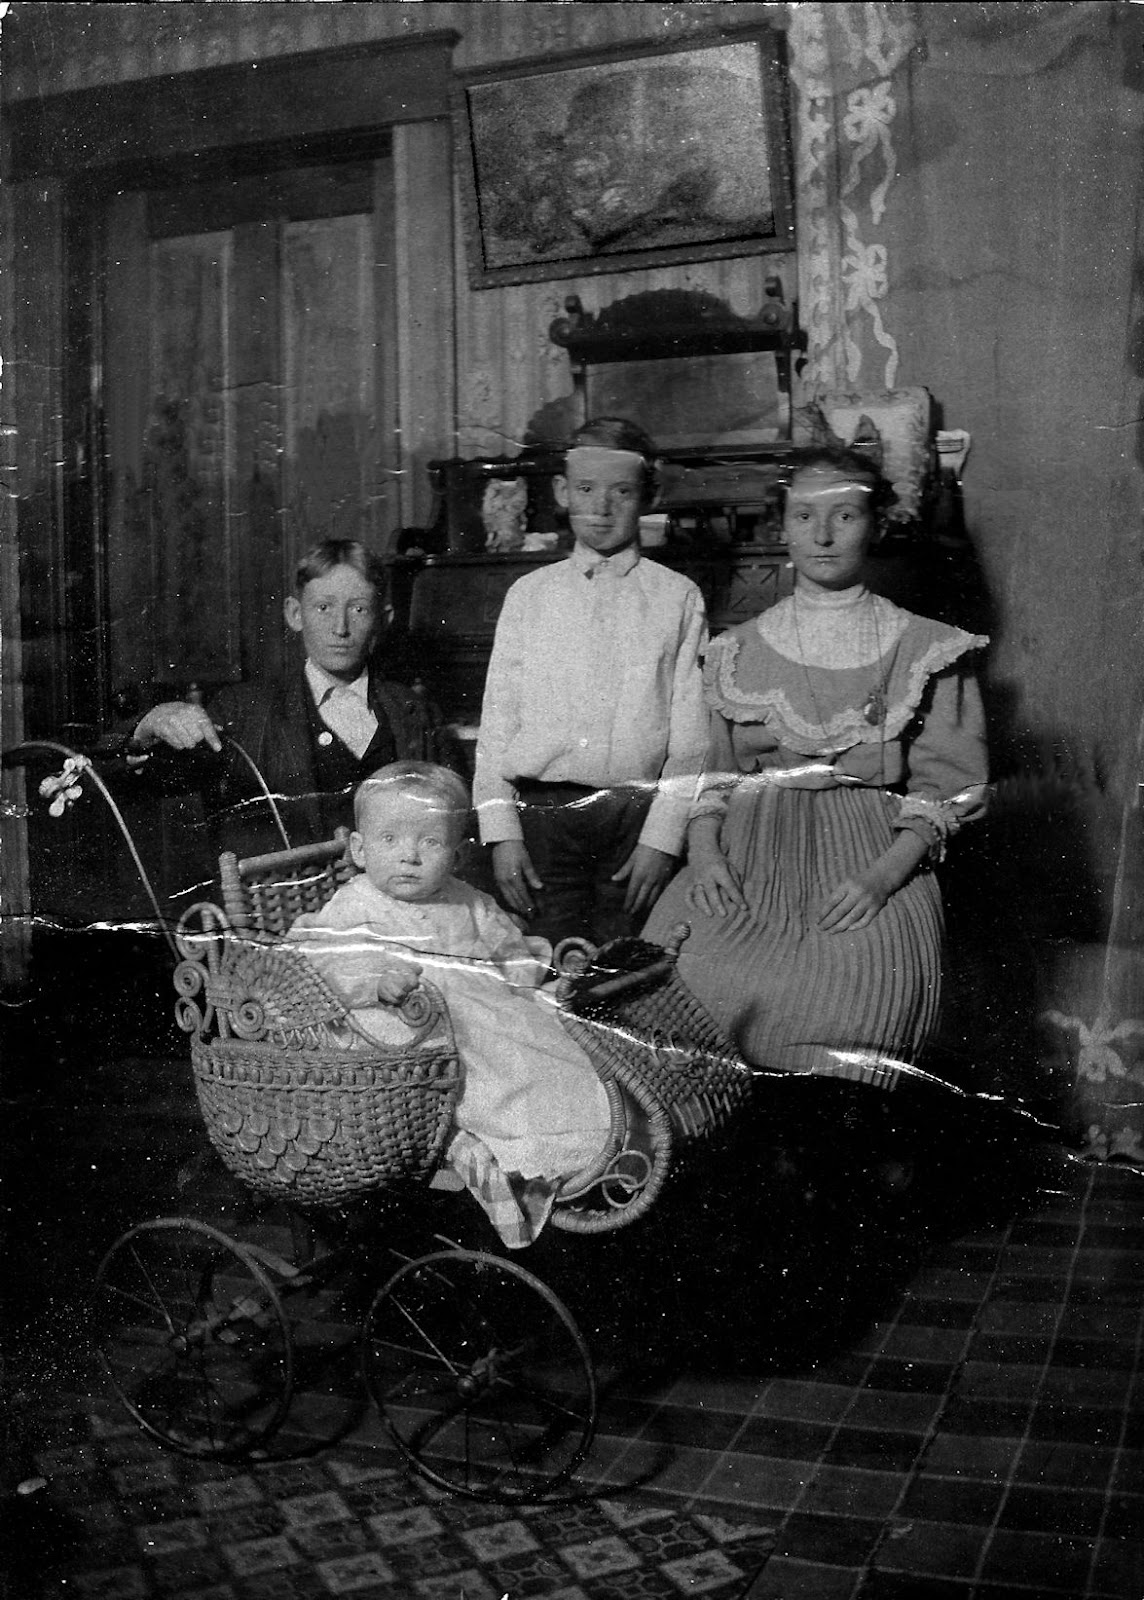 Clyde, Arley, Harry and Beulah Phillips ca 1910_sml.jpg